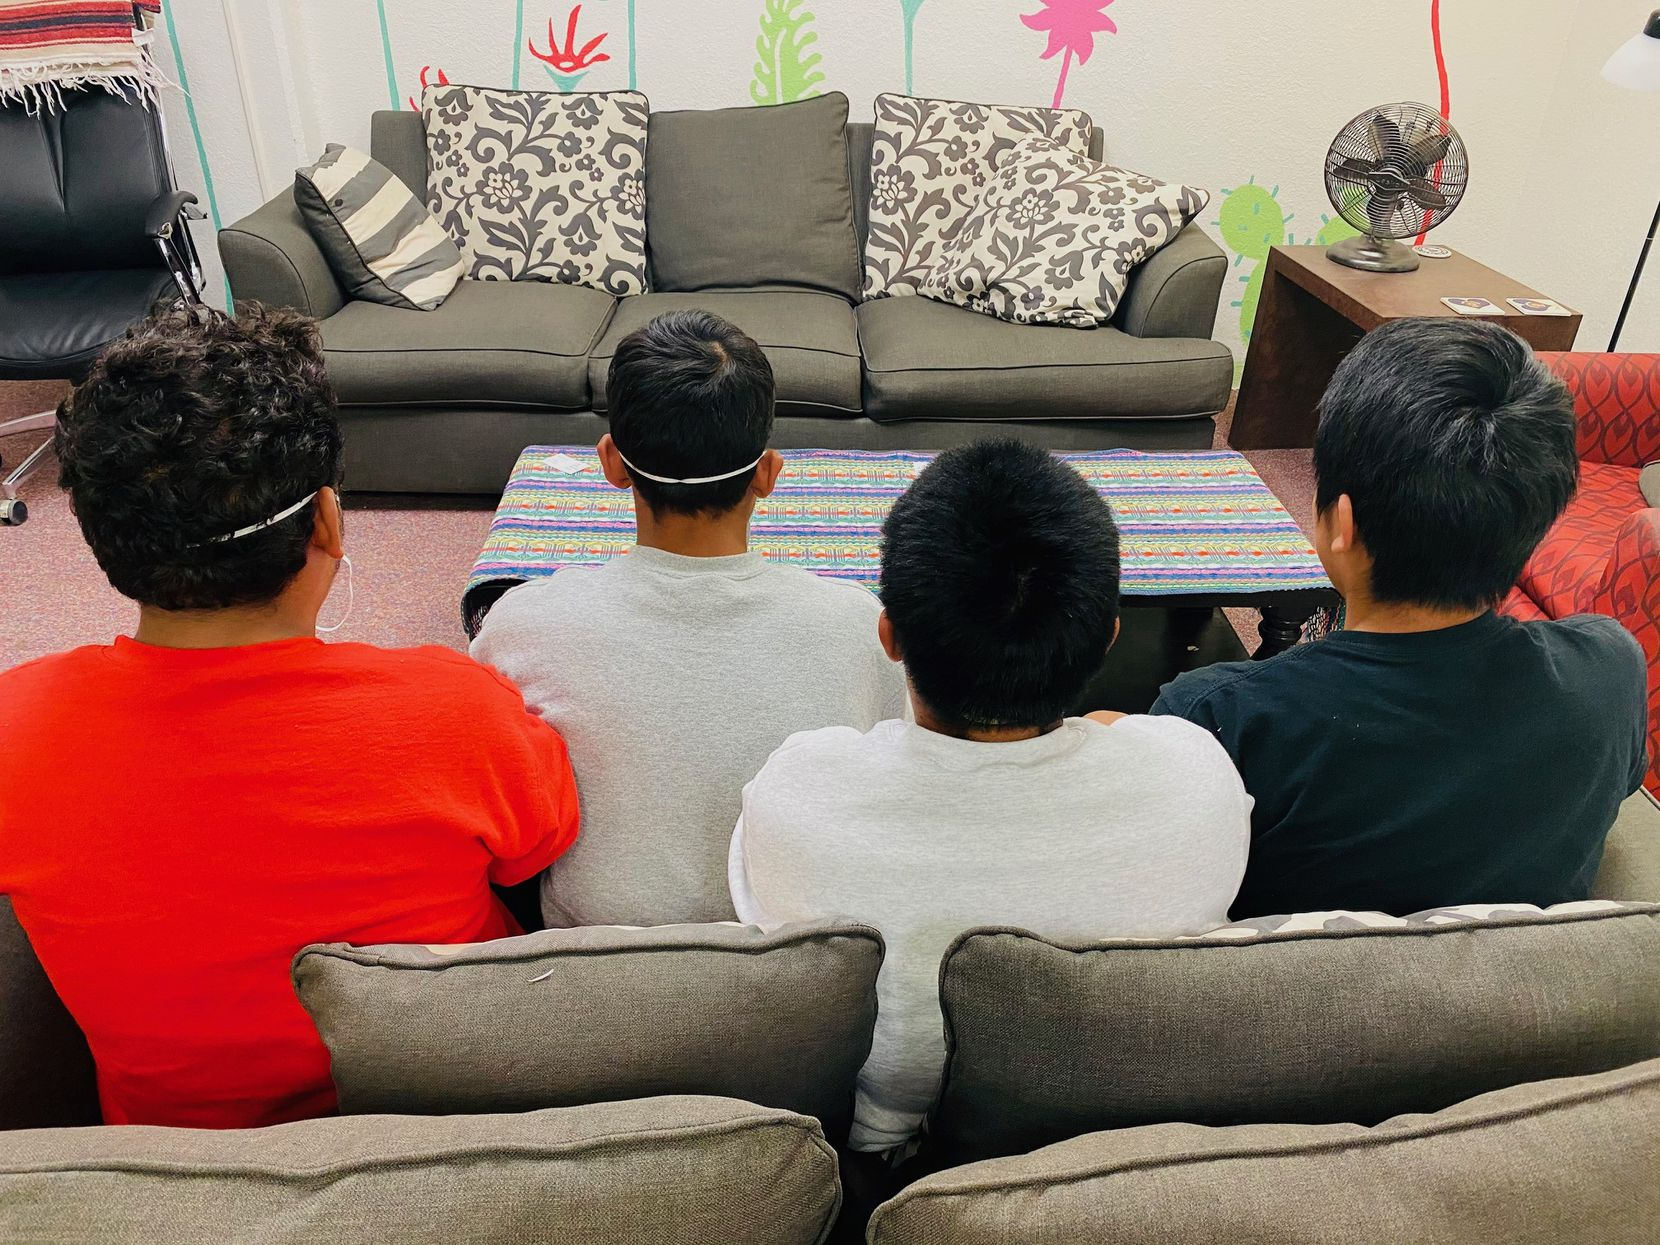 Four Guatemalans who celebrated an 18th birthday on the same day, seen here May 28 at El Paso's Annunciation House, spoke of the conditions that forced them to flee their country and of what they hope the Biden administration can do to help stop the exodus of people headed north.